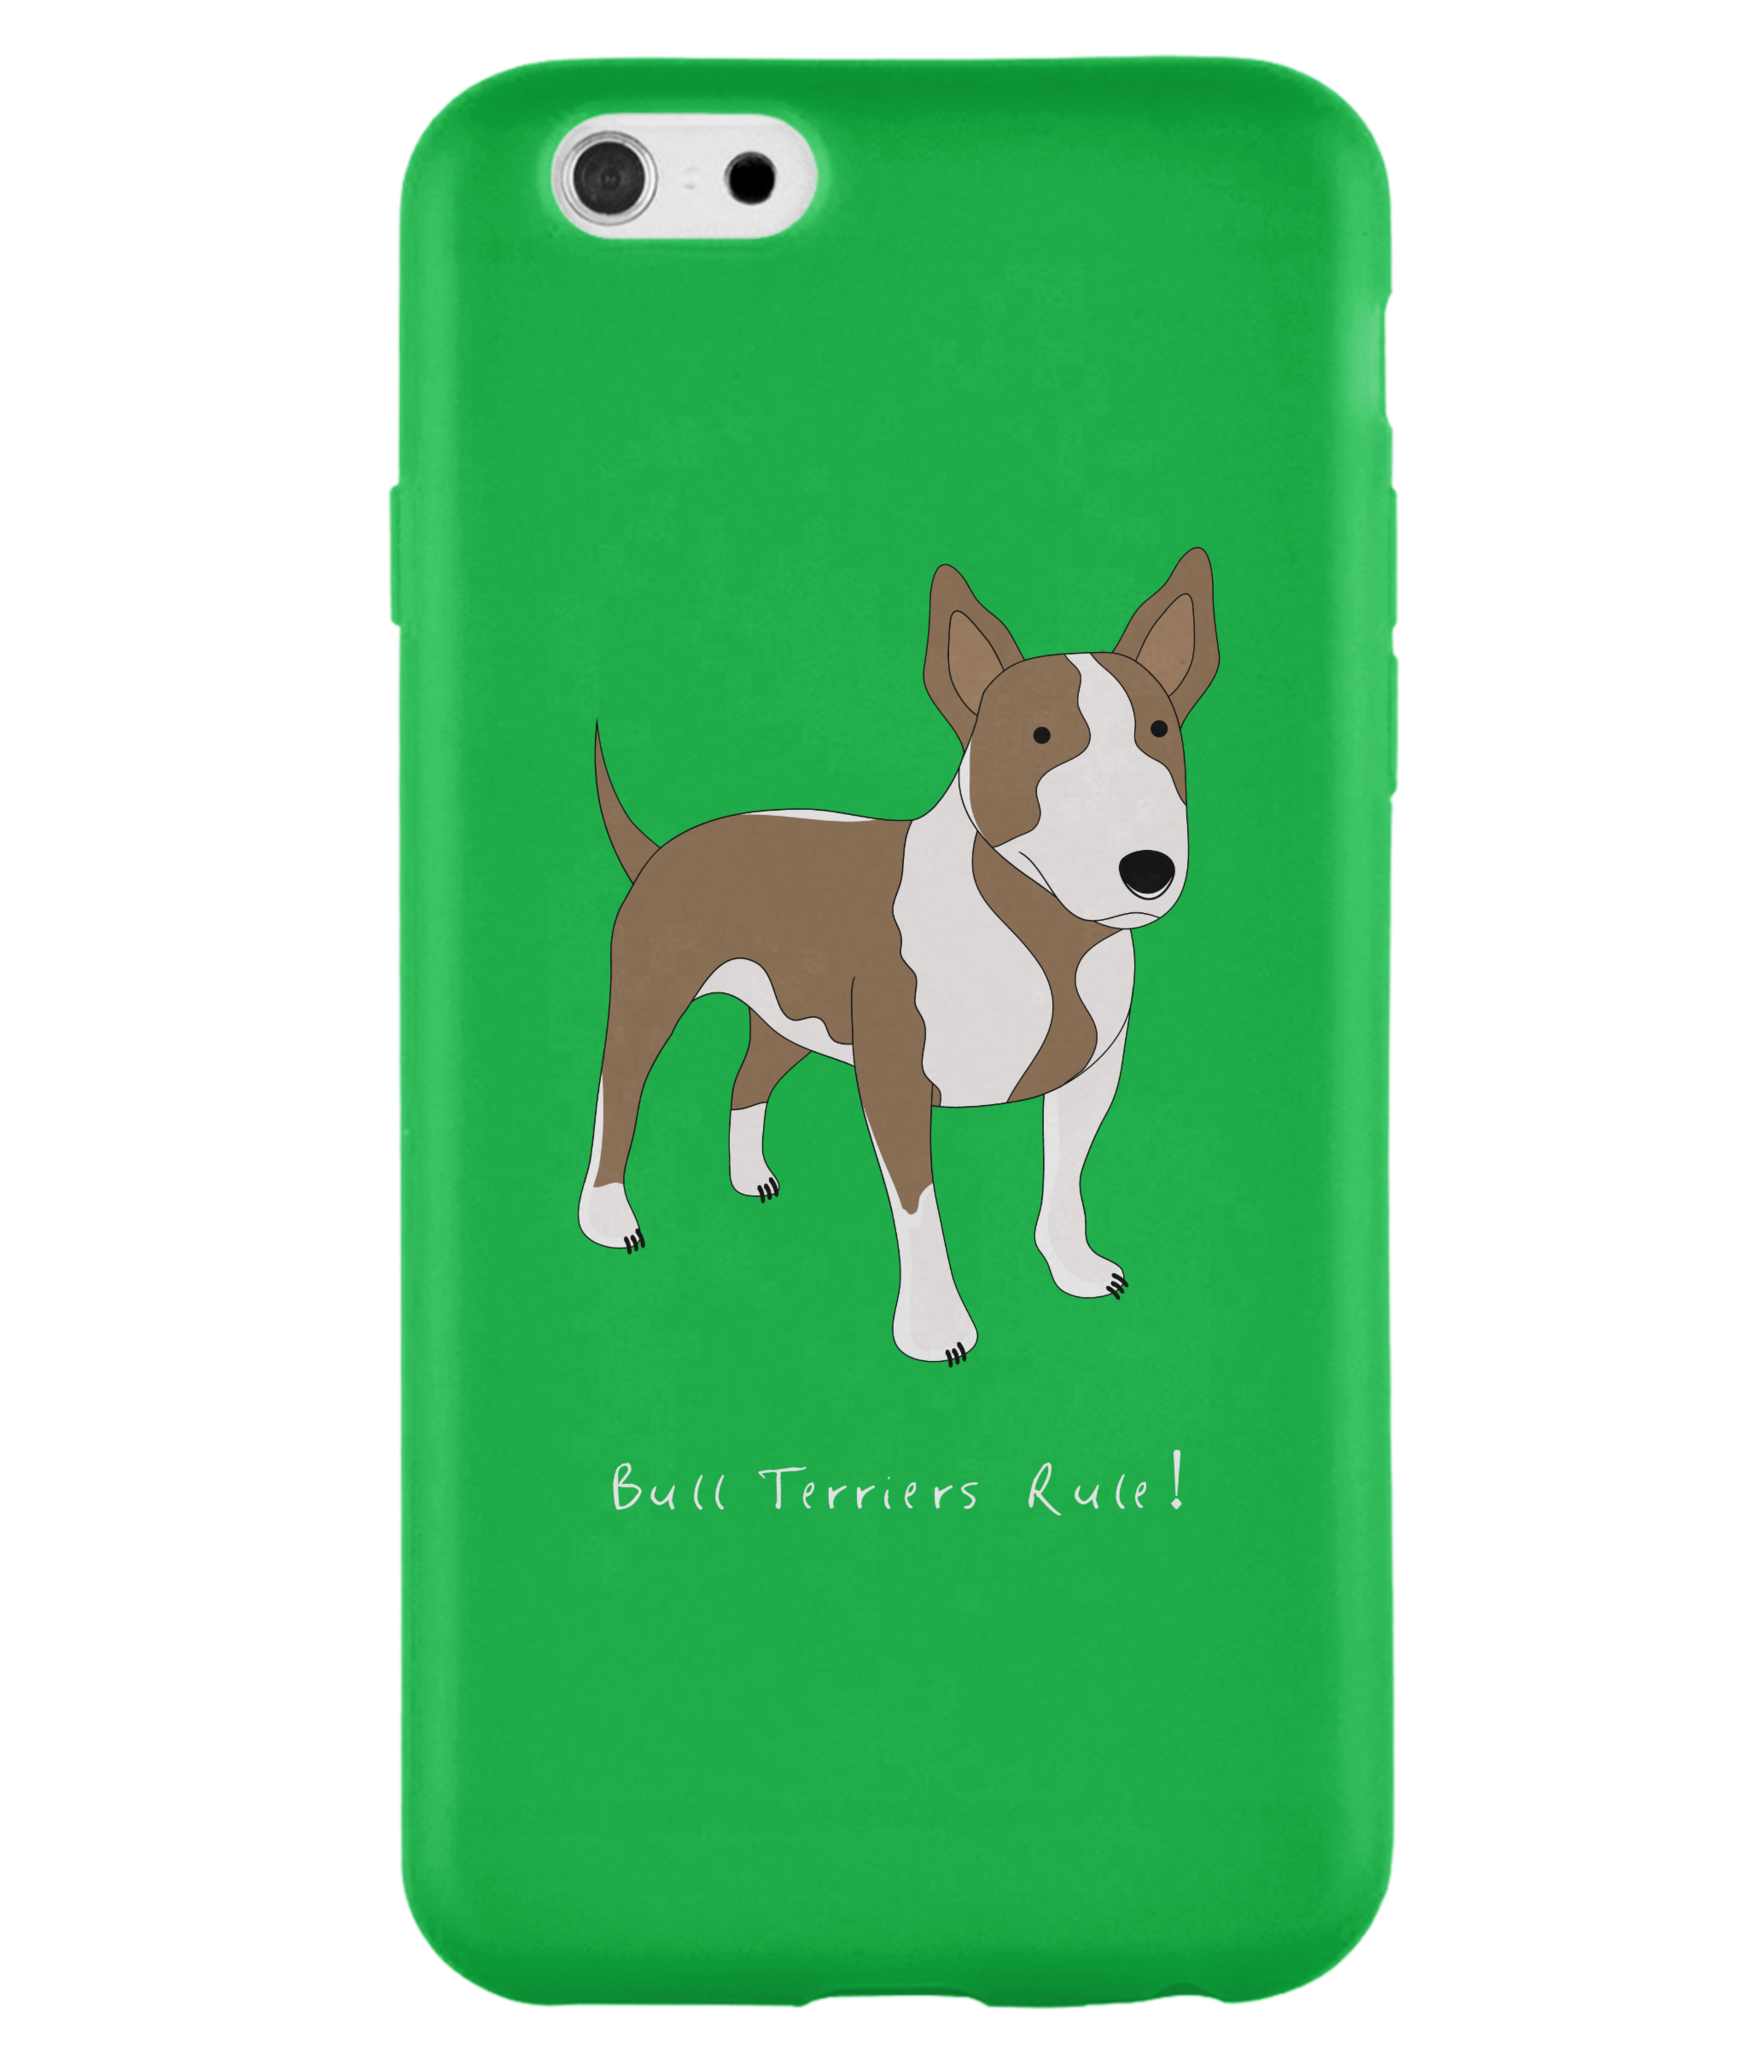 iPhone 6s Full Wrap Case - Bull Terriers Rule! - Dogs Rule!